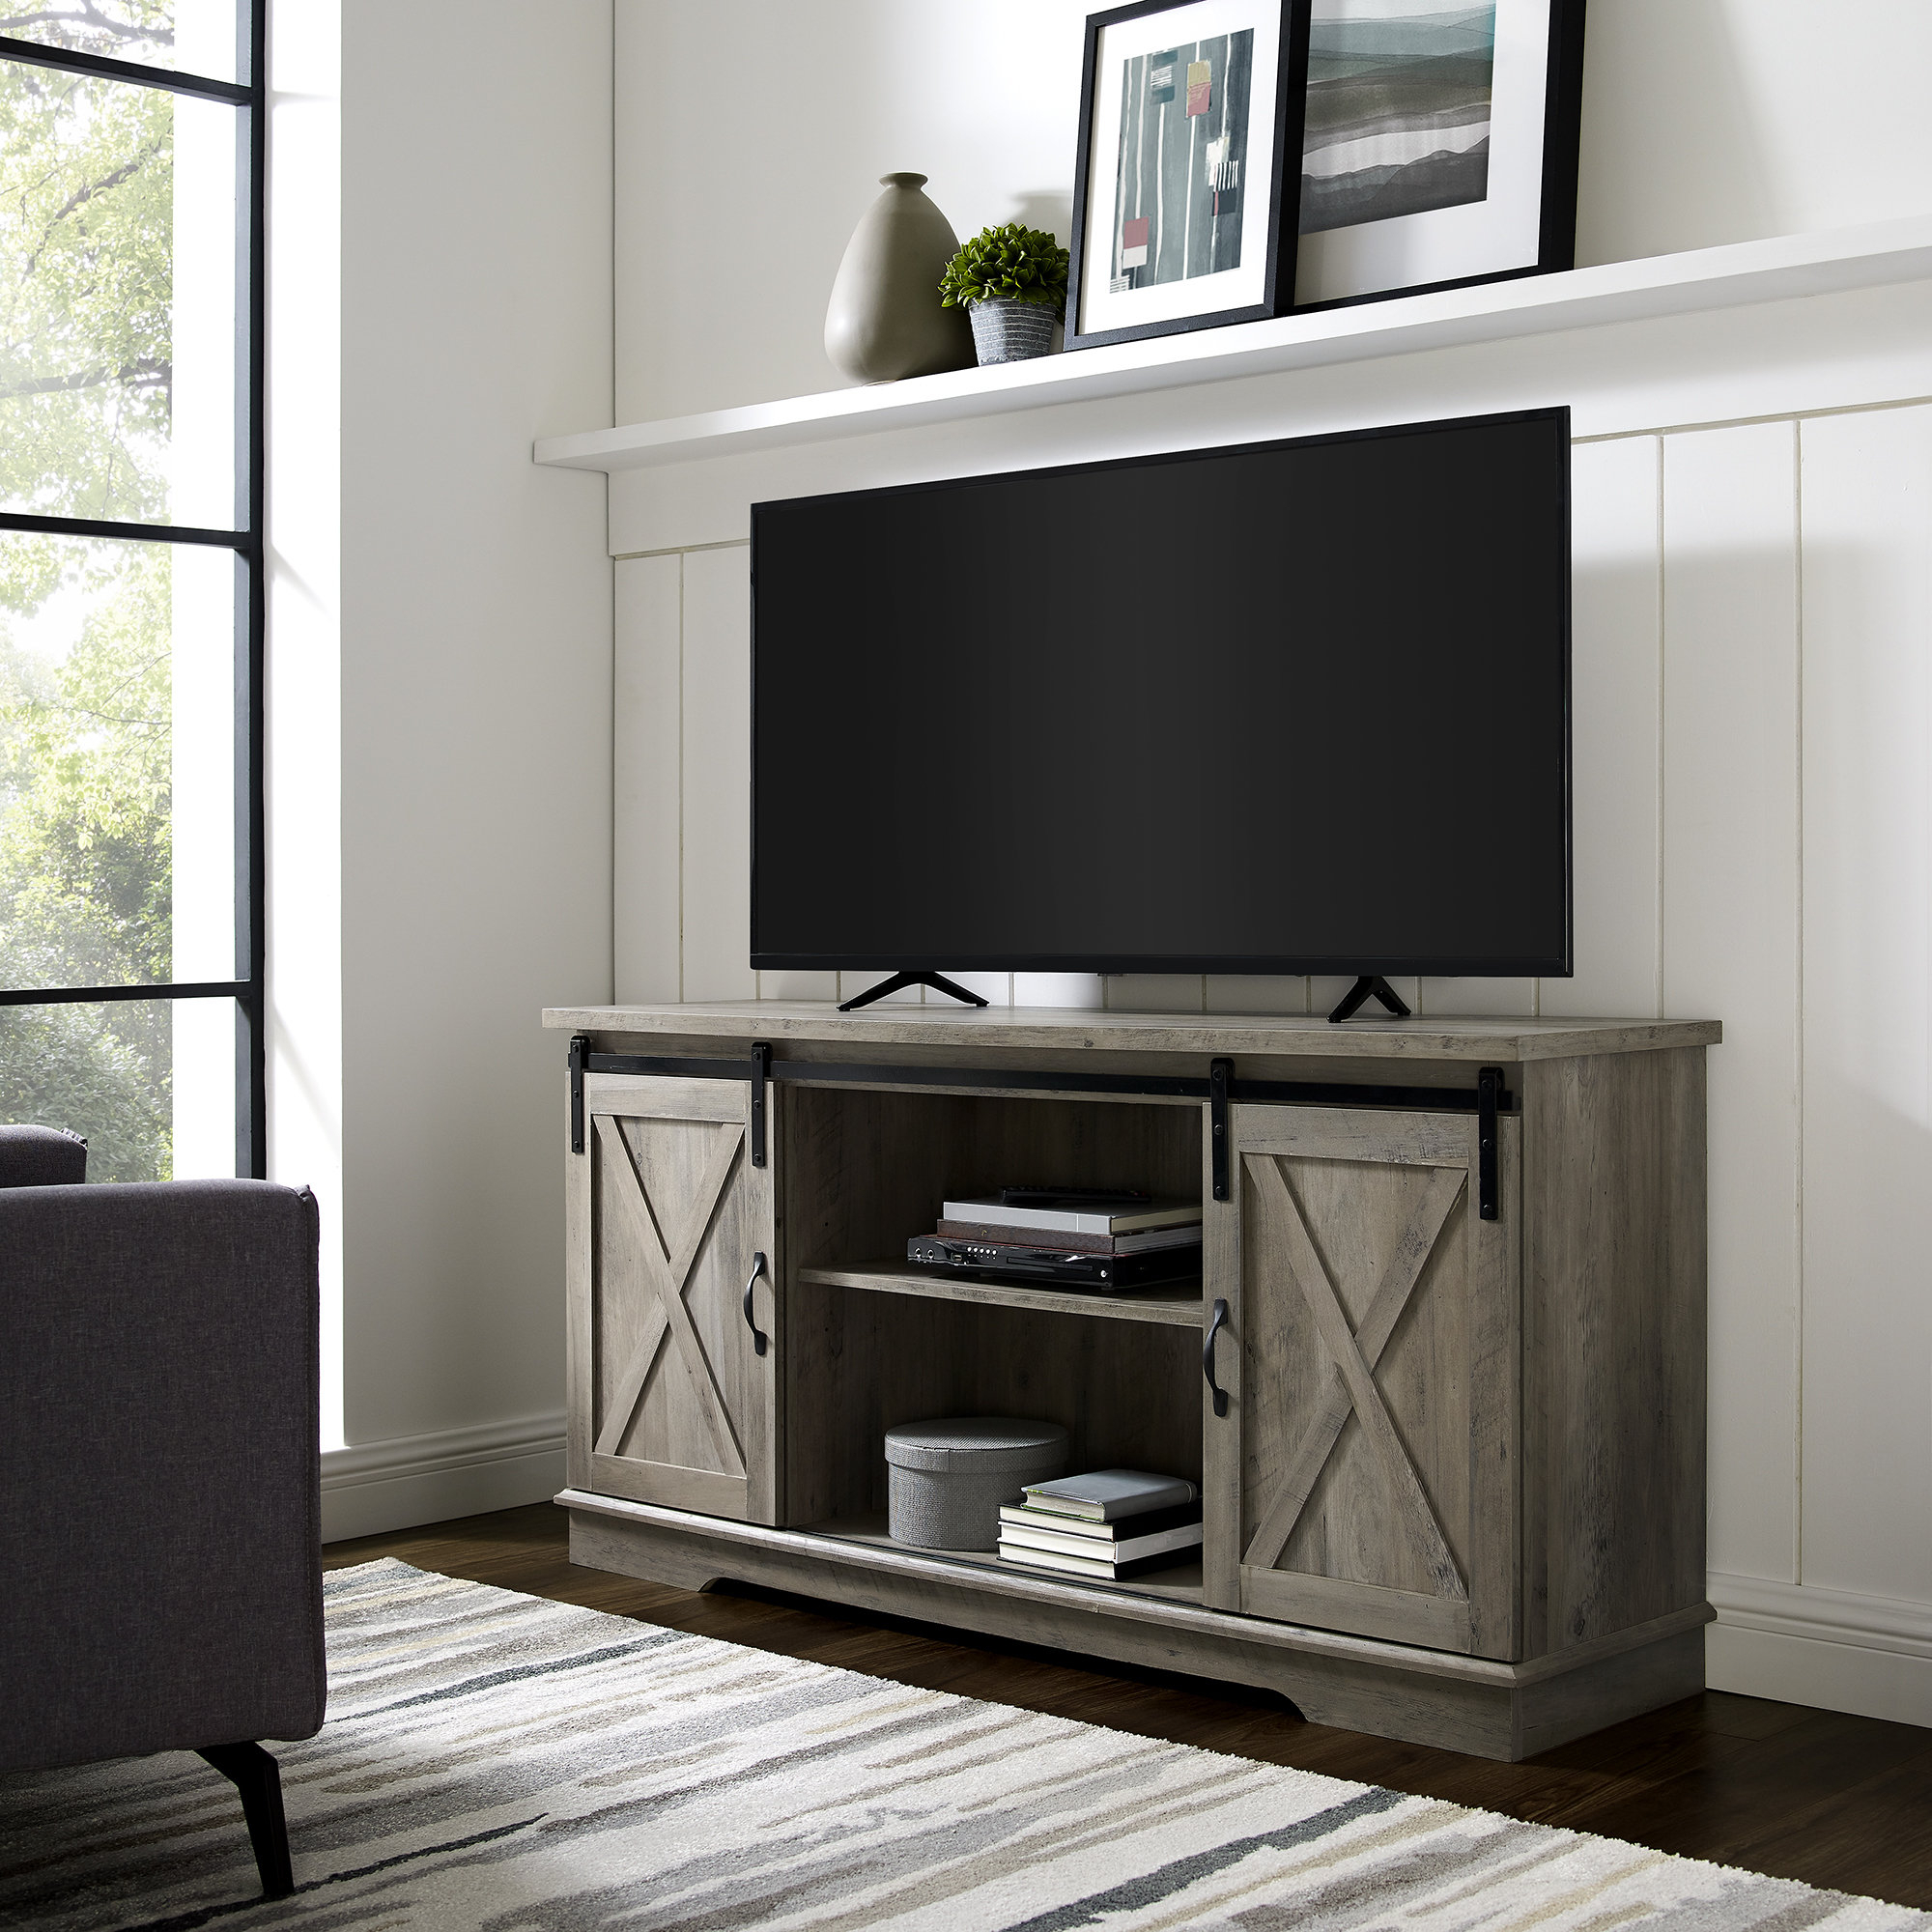 72 Inch Tv Stand | Wayfair Intended For Kenzie 60 Inch Open Display Tv Stands (View 10 of 20)